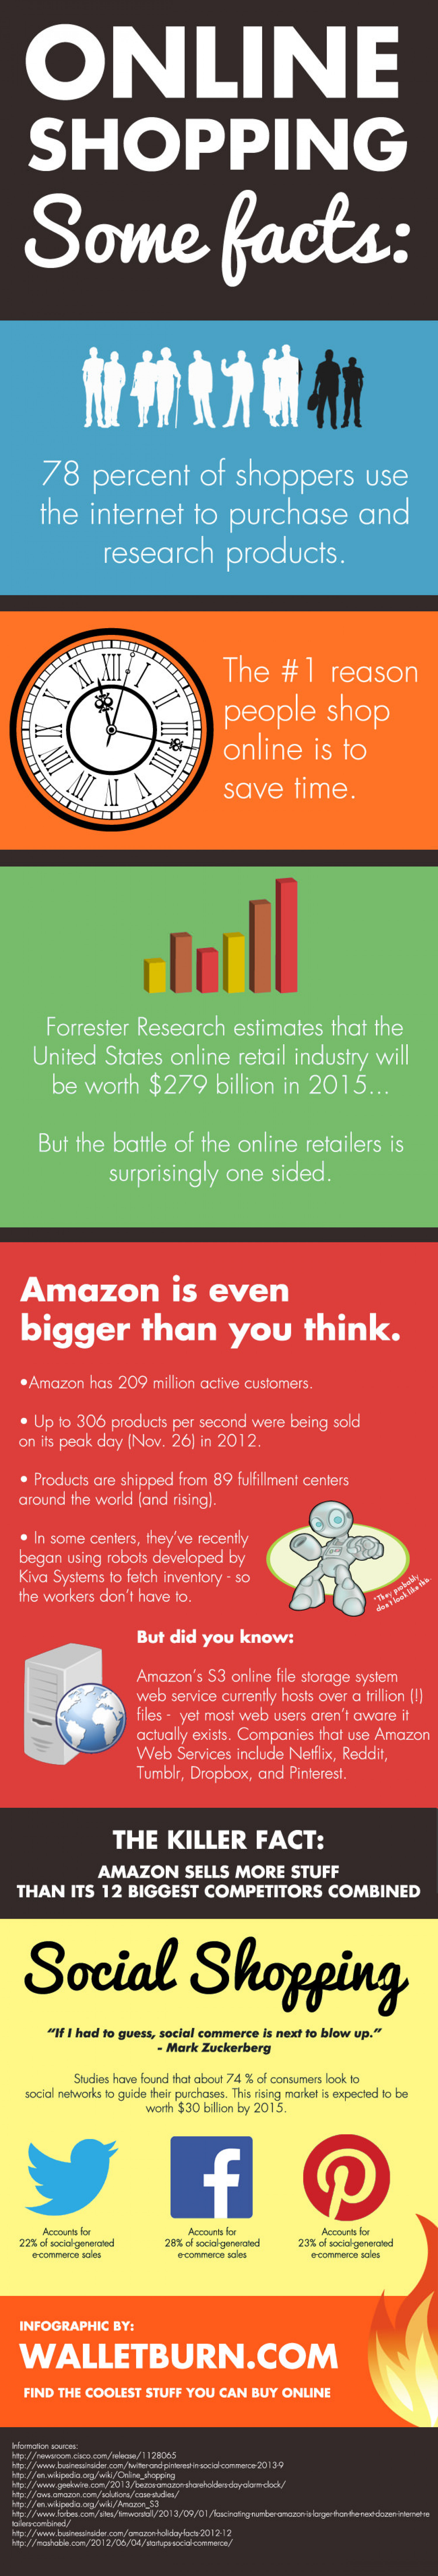 Some Facts about Online Shopping Infographic